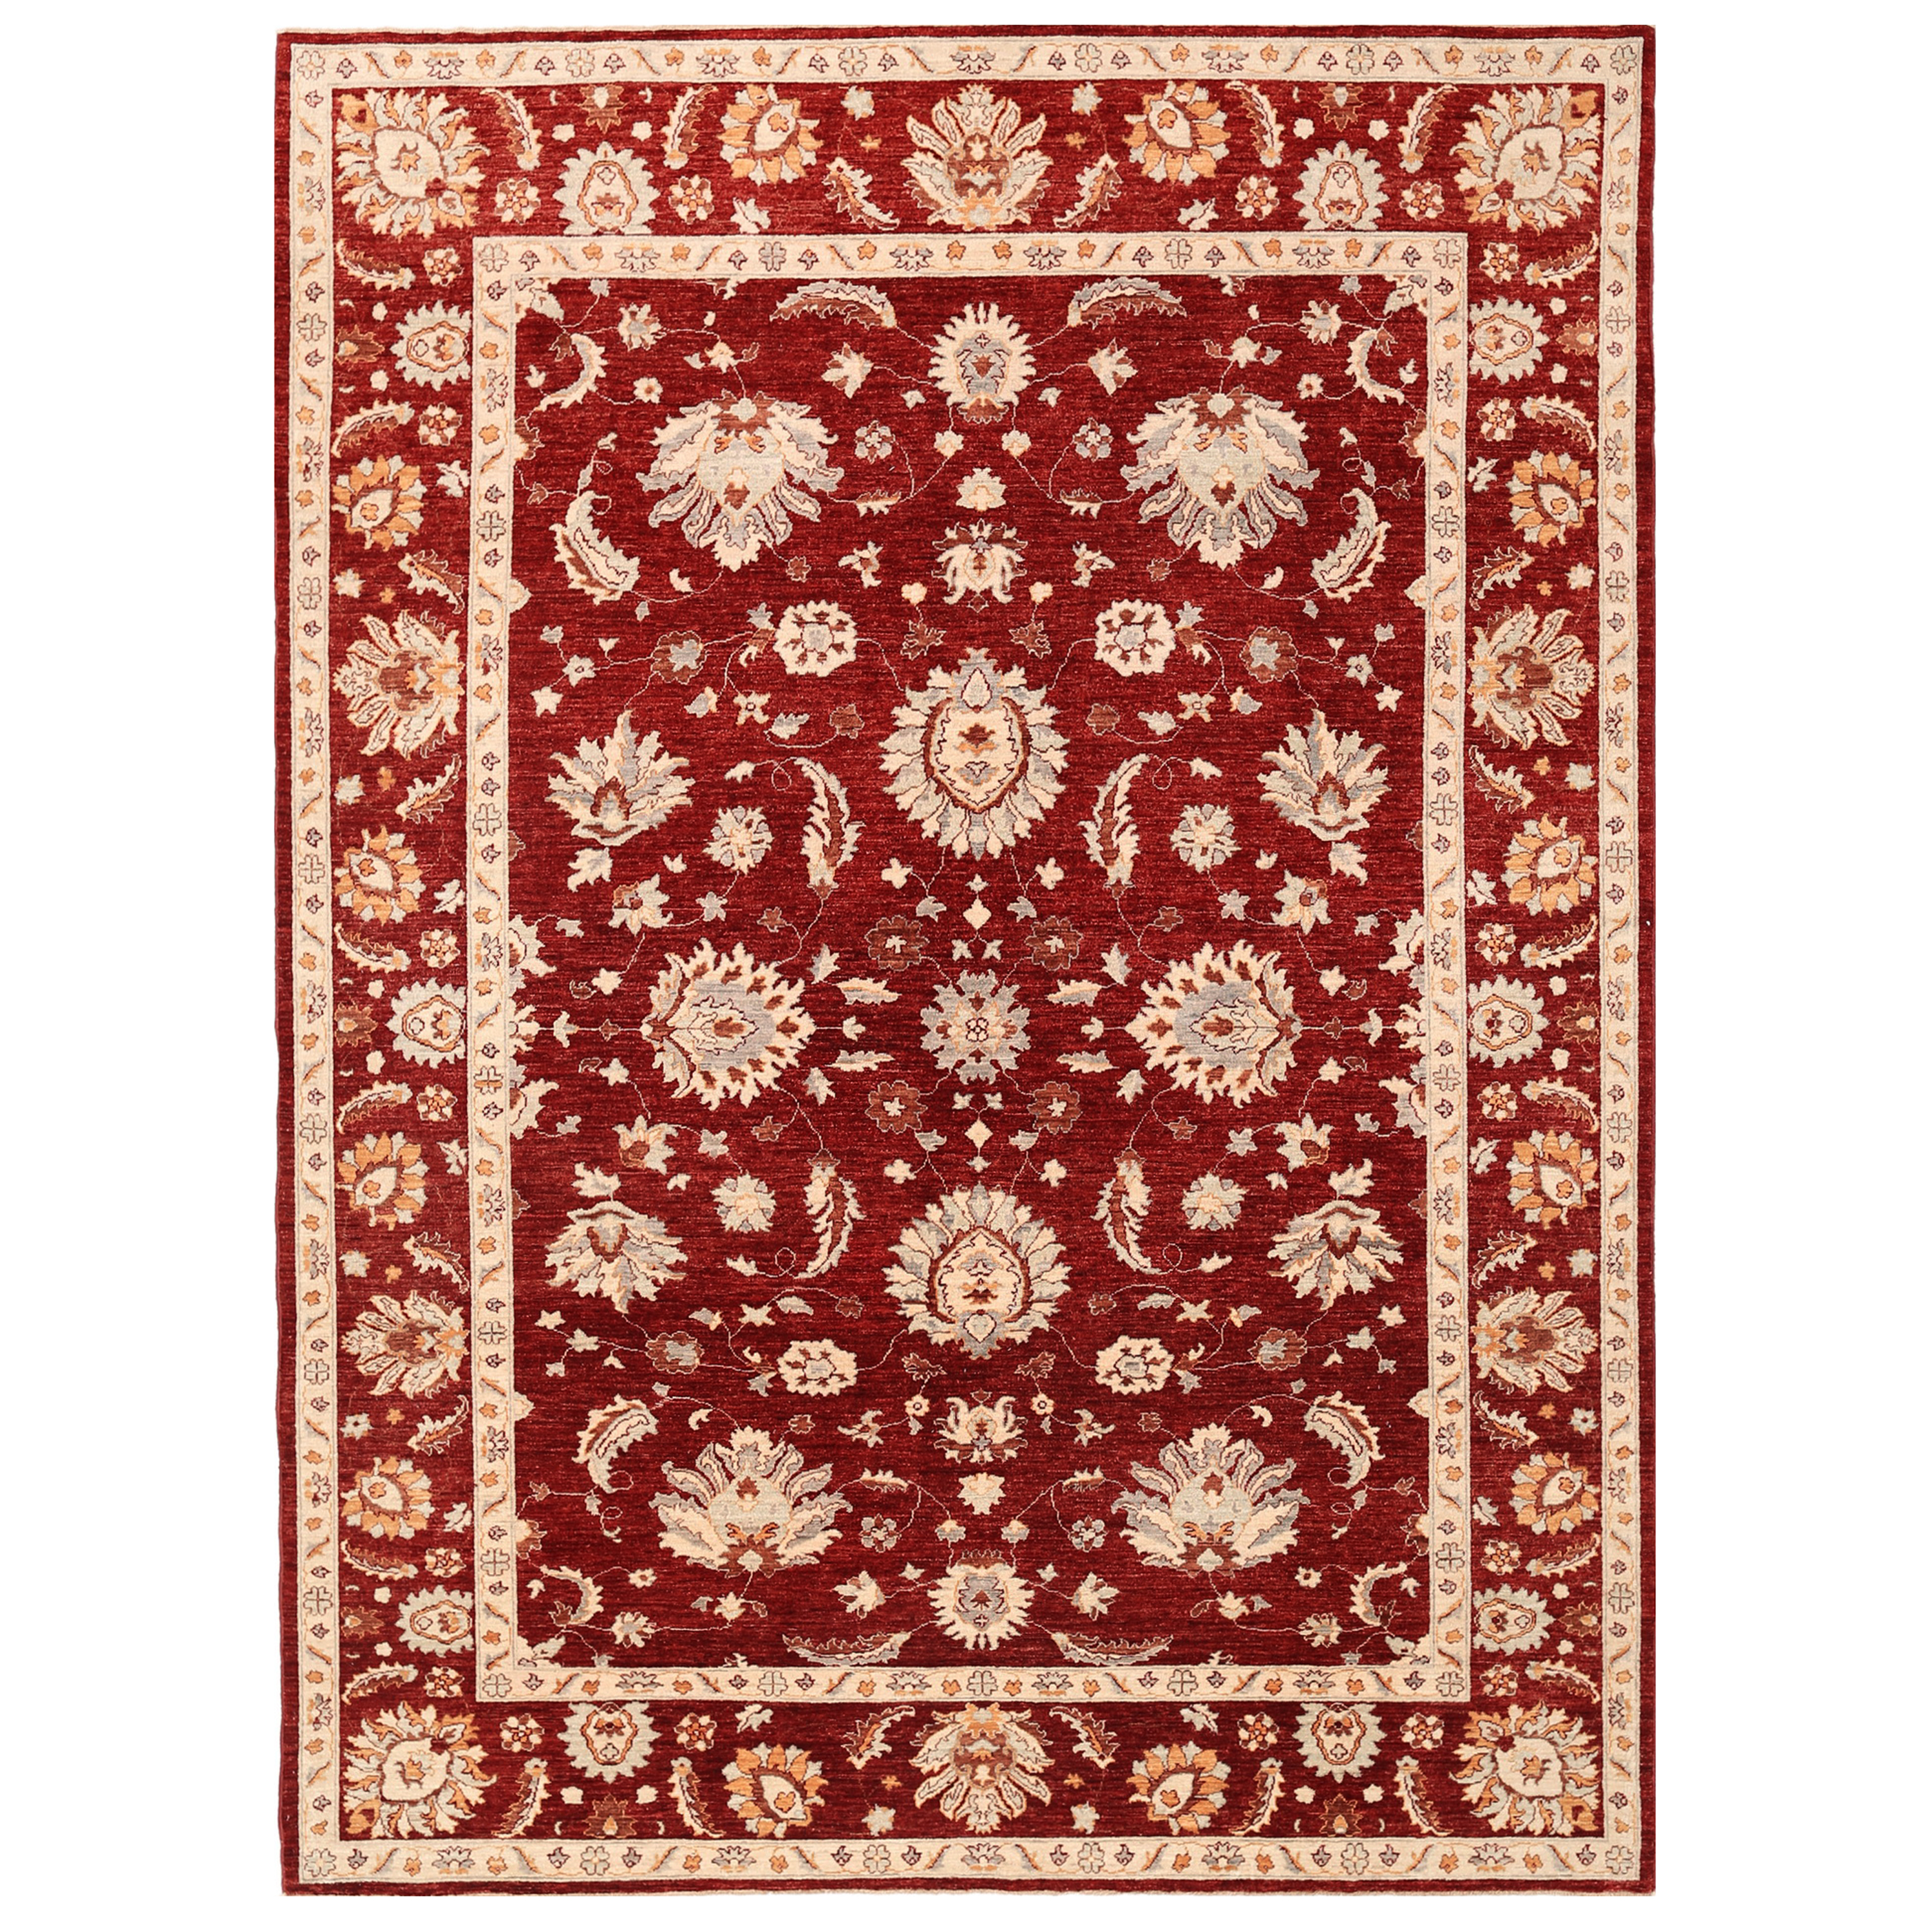 Afghan Hand Knotted Vegetable Dye Tabriz Wool Rug 9 X 12 4